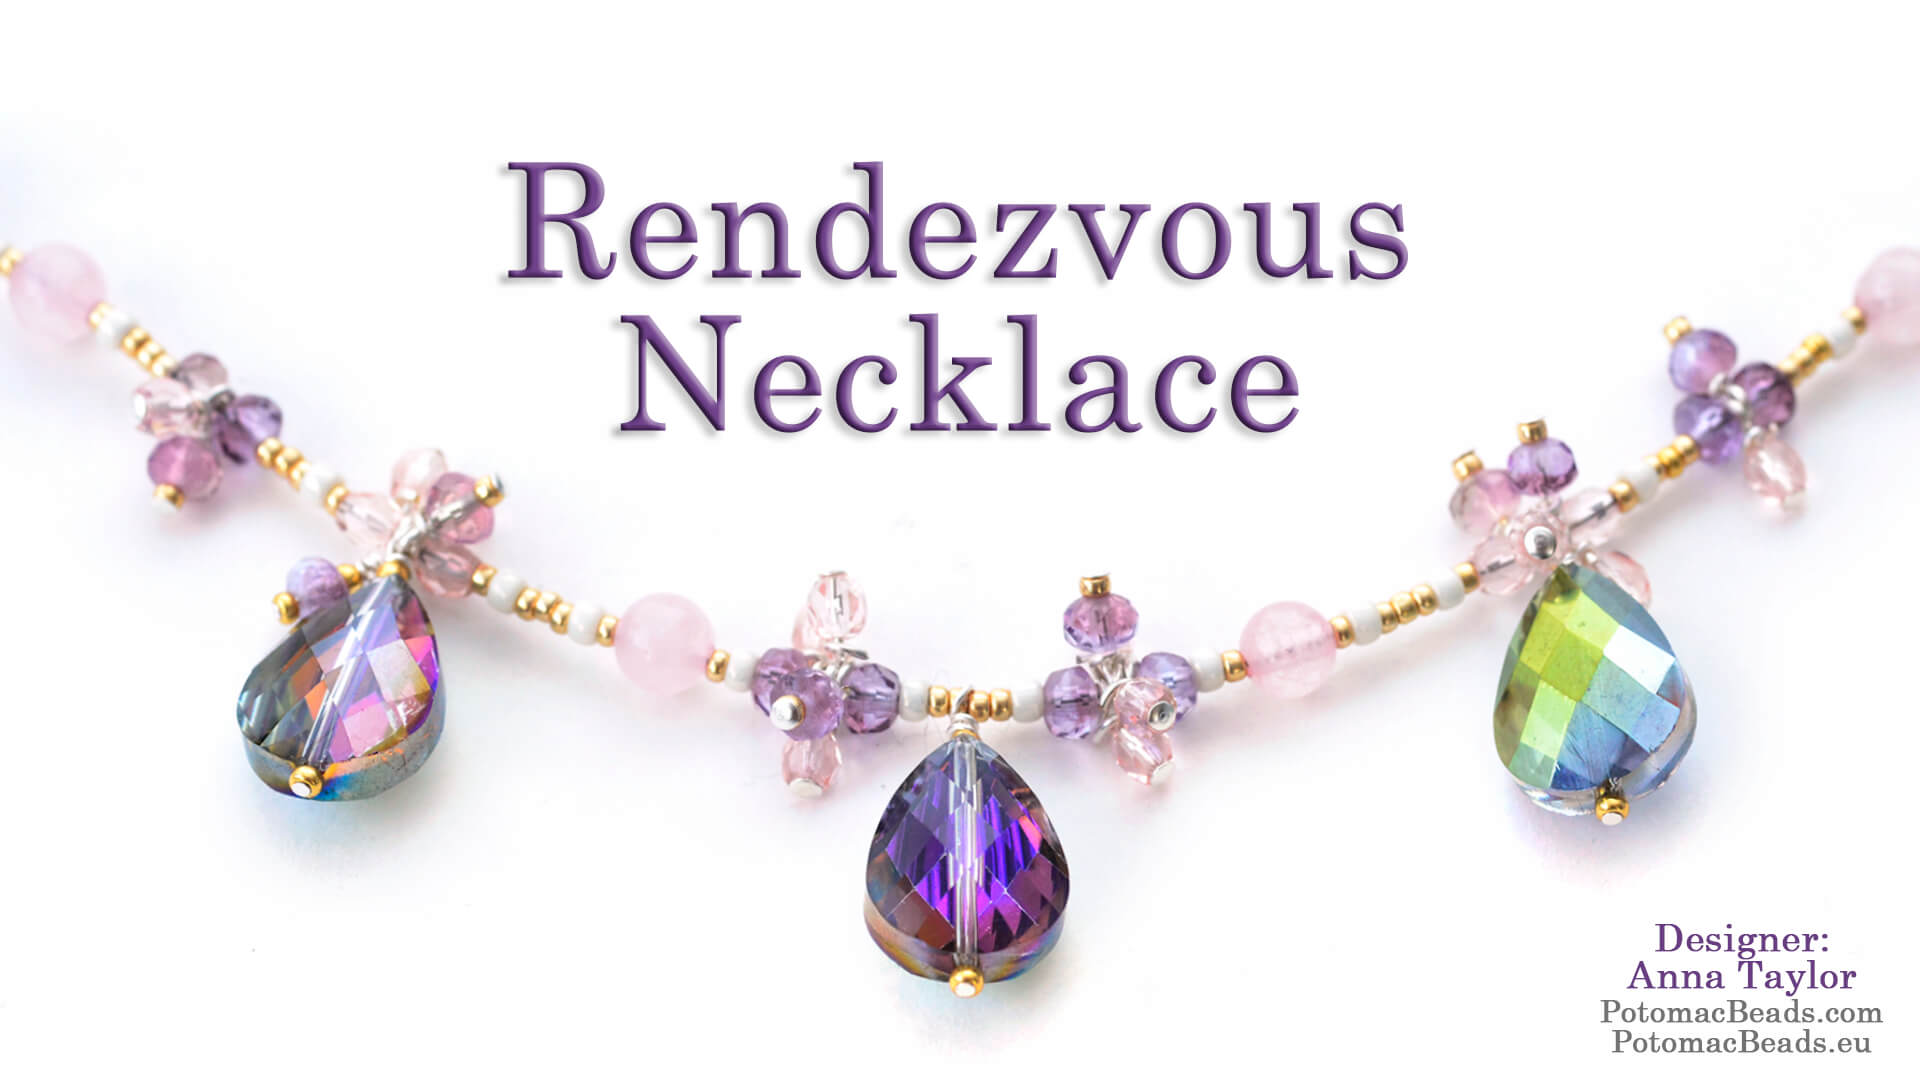 How to Bead Jewelry / Videos Sorted by Beads / Gemstone Videos / Rendezvous Necklace Tutorial